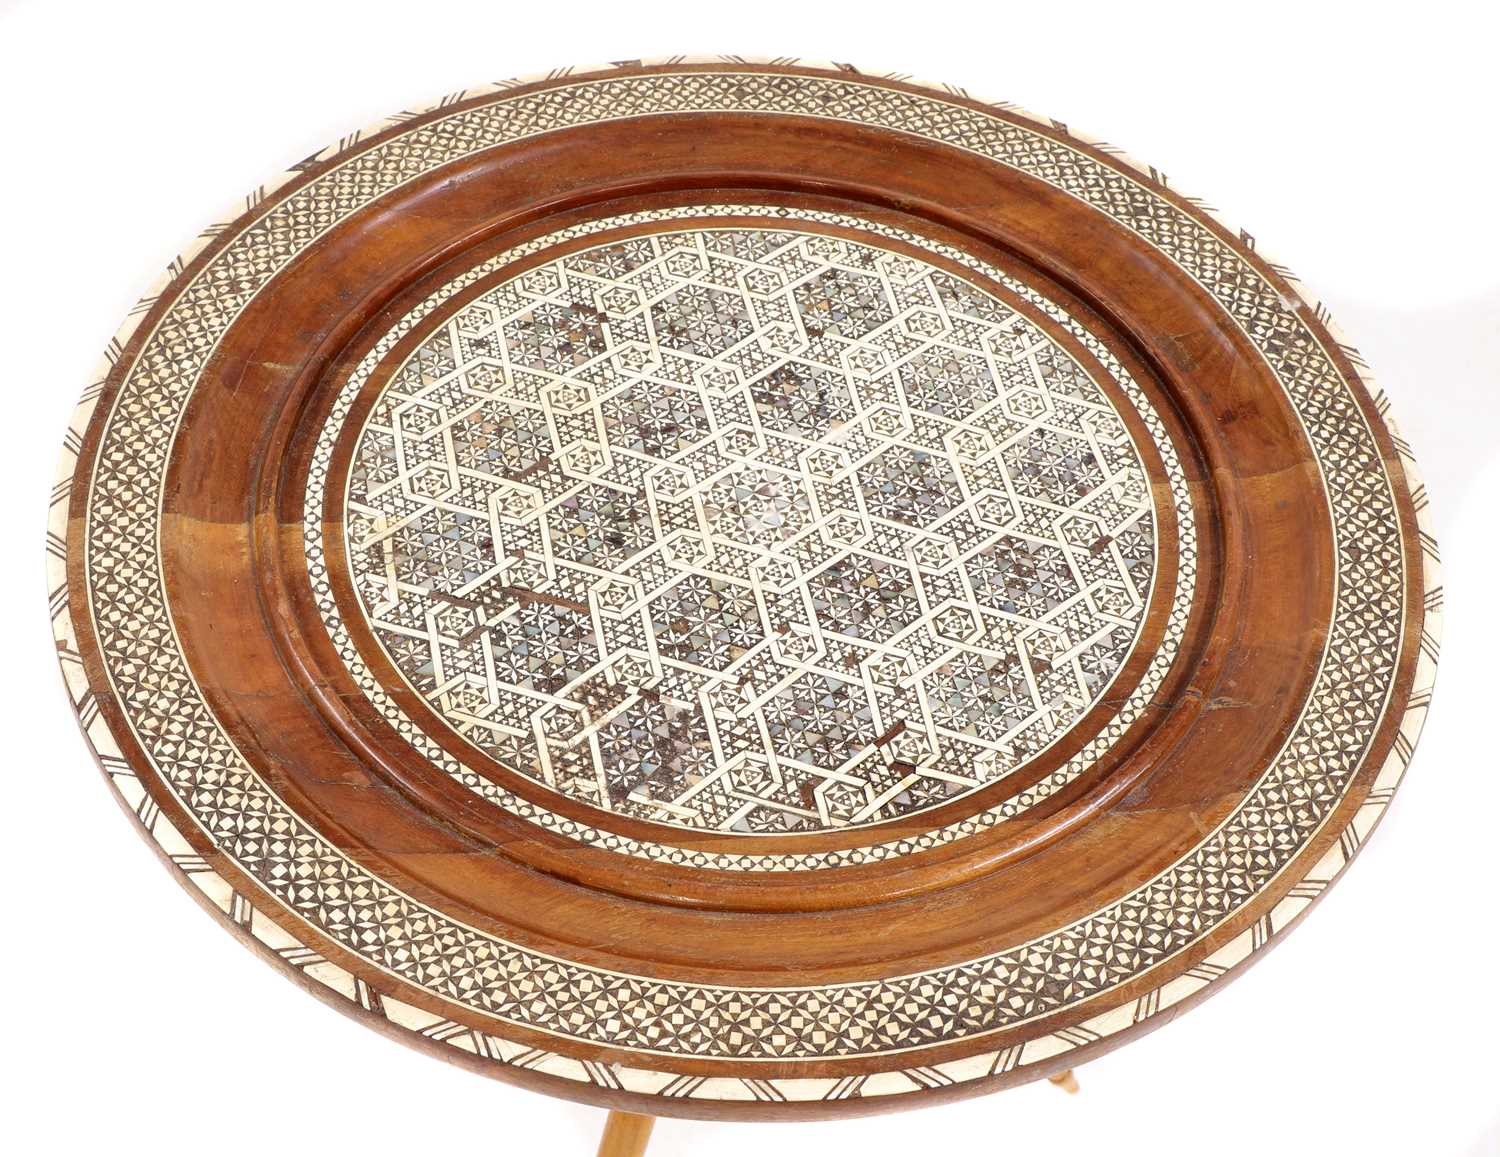 A Syrian inlaid occasional table, - Image 2 of 5